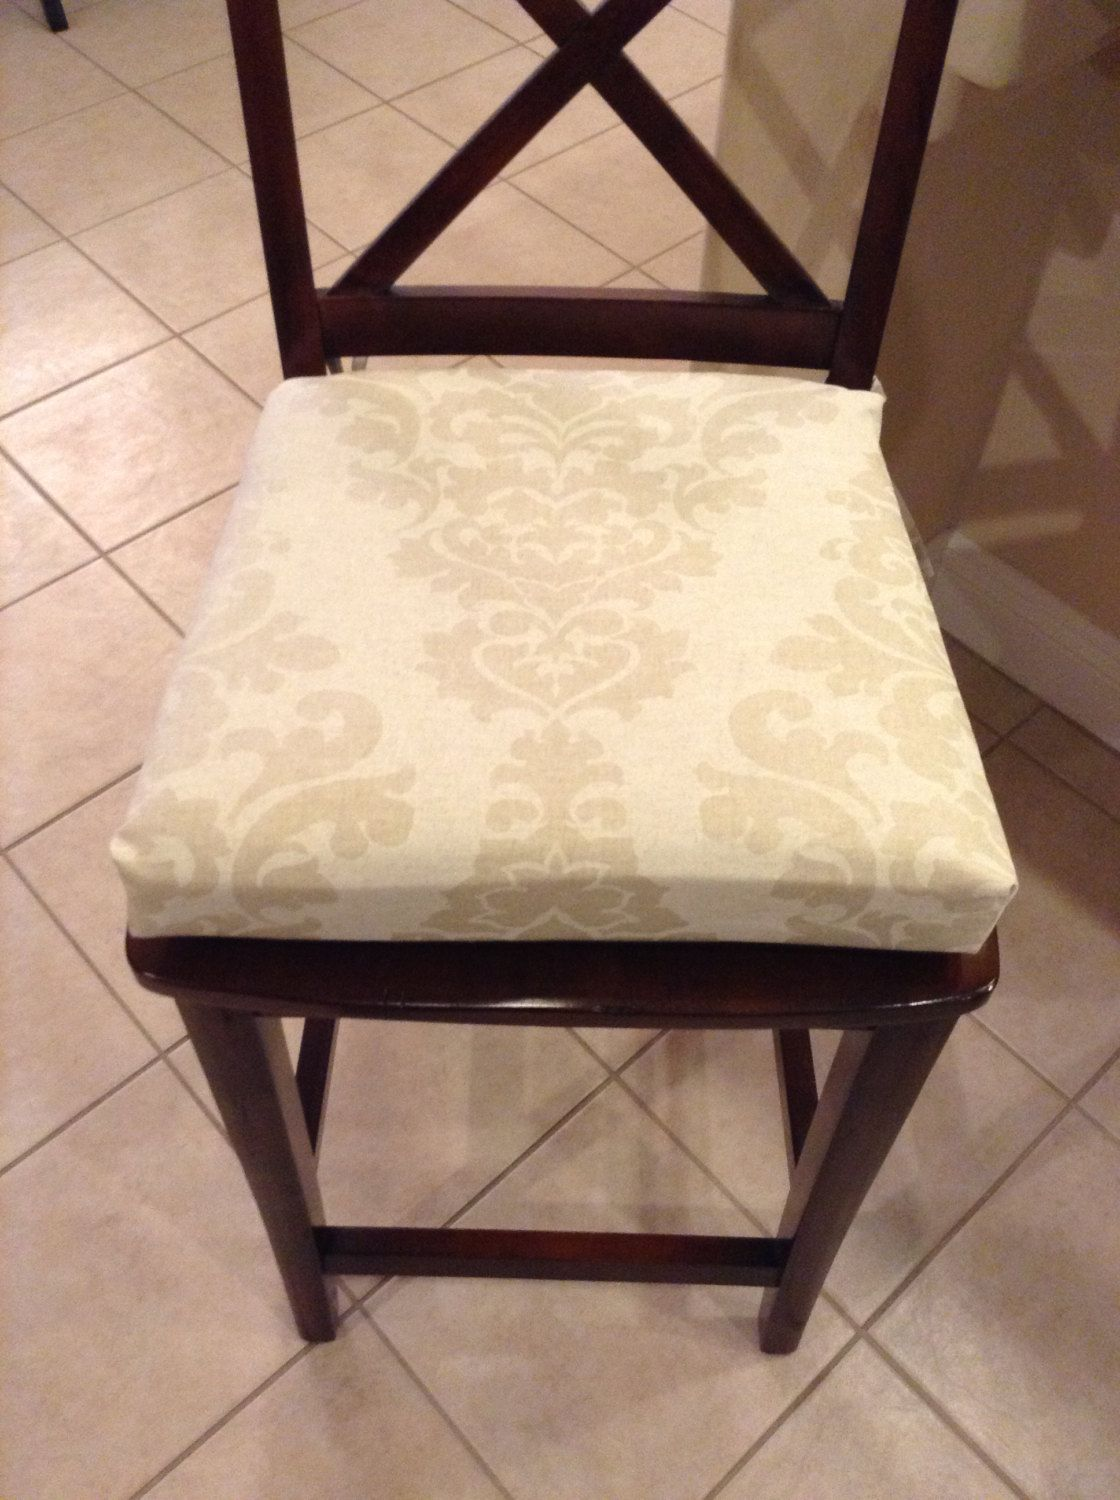 Damask Print Kitchen Chair Cushion Barstool Counter